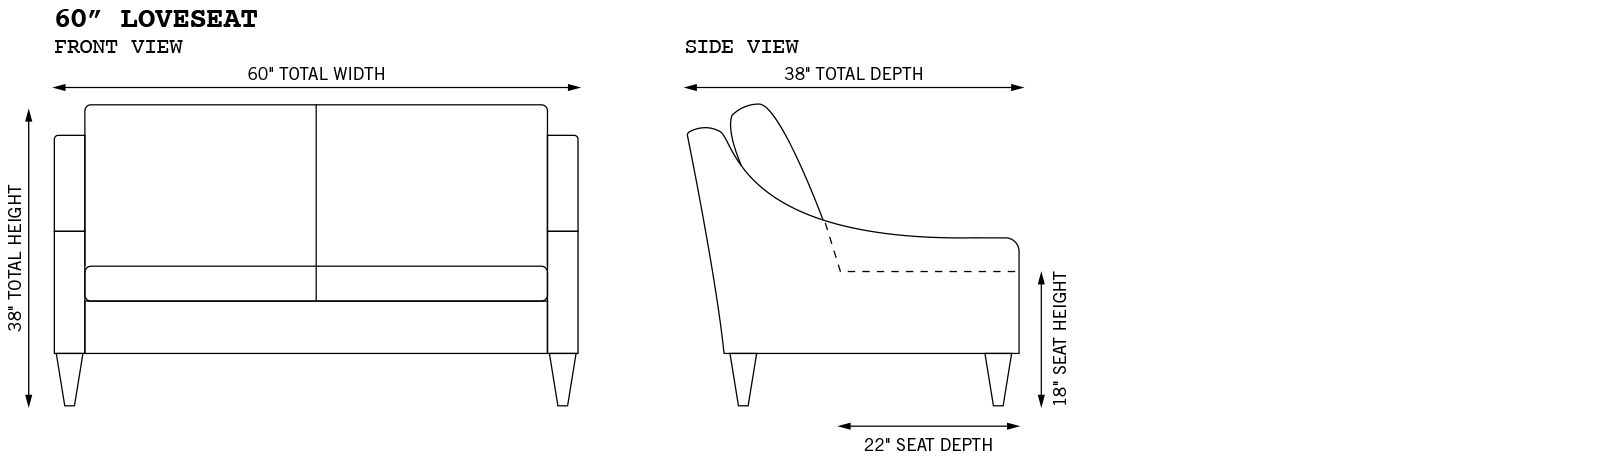 Gracie Extended Loveseat Dimensions